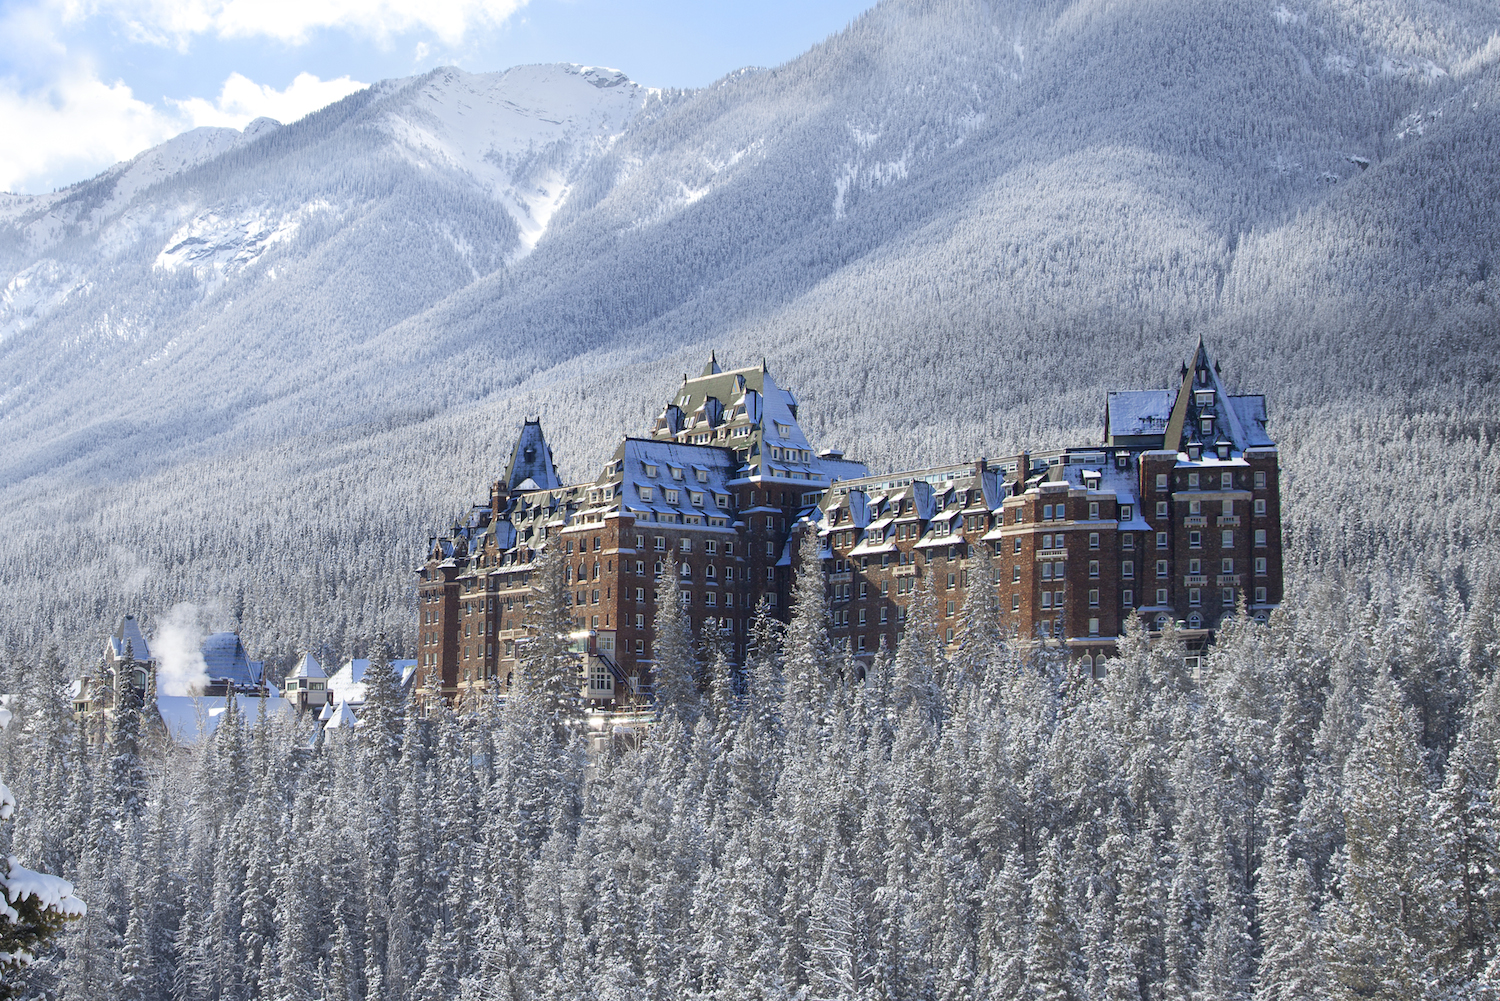 Spend a white Christmas at Lake Louise